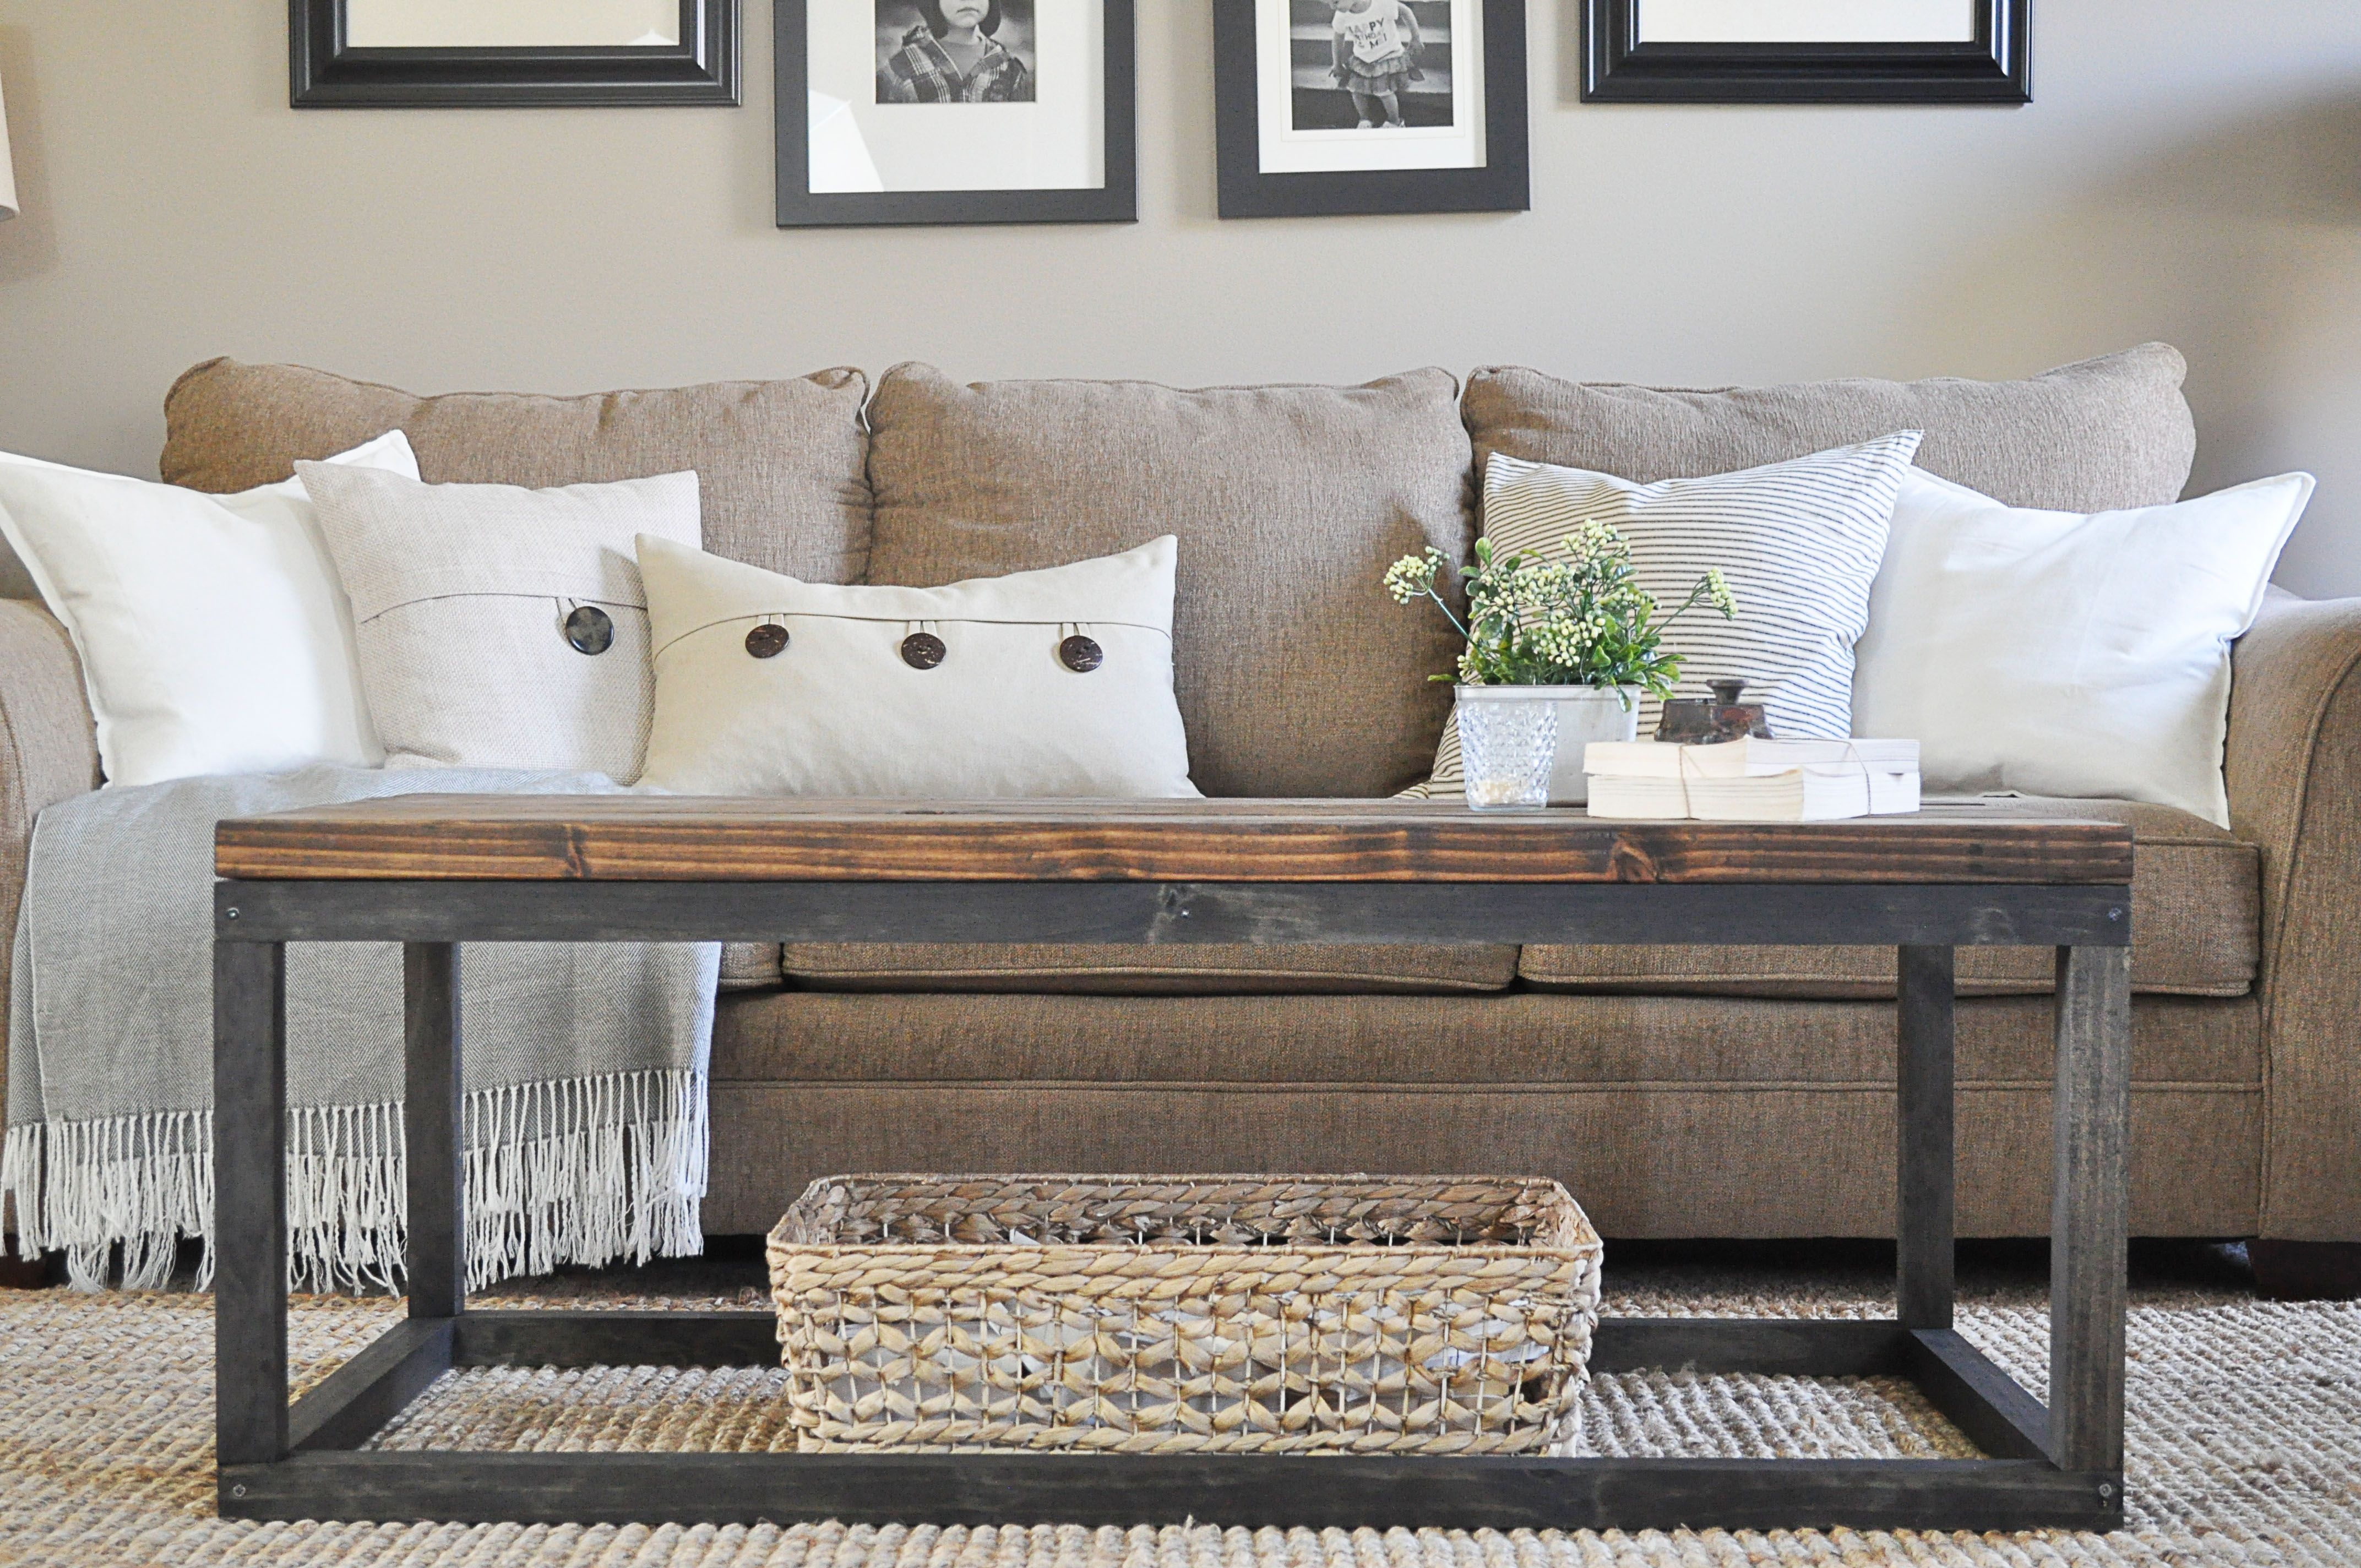 free diy coffee table plans you can build today little glass jar accent wooden and metal living room commercial butler top square tablecloth west elm marble lamp sliding barn